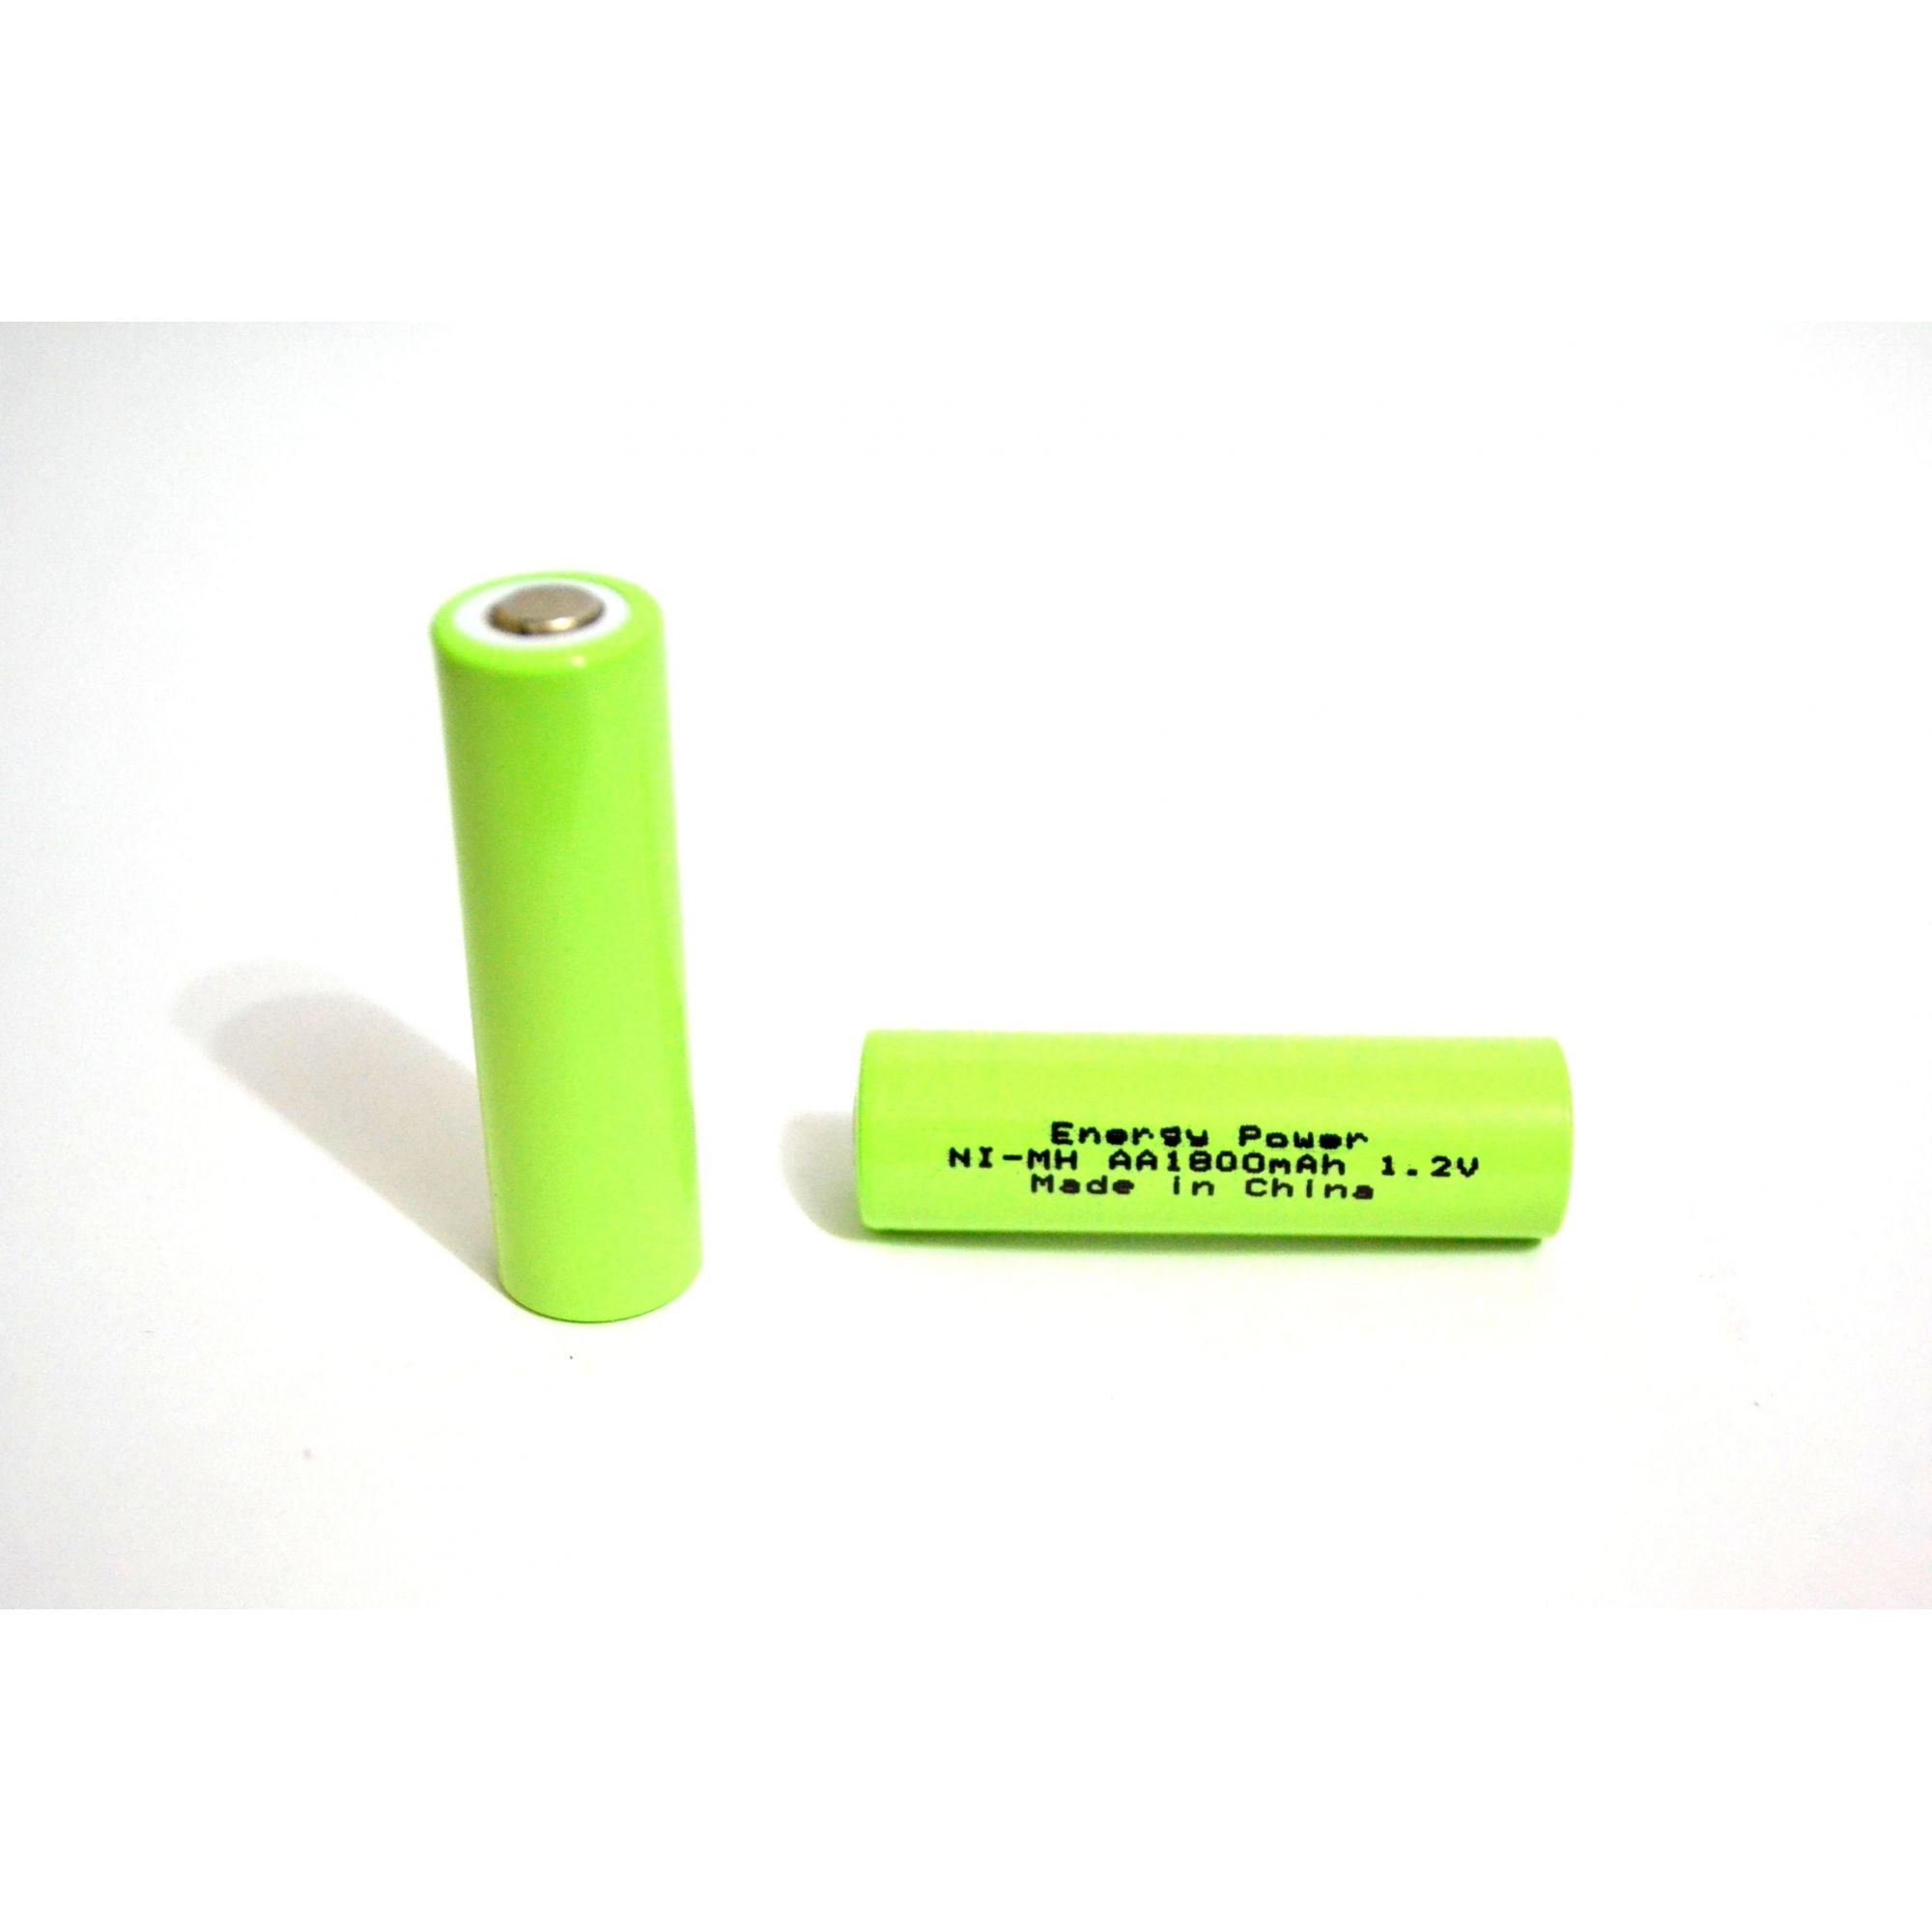 BATERIA ENERGY POWER AA 1800MAH 1,2V NI-MH